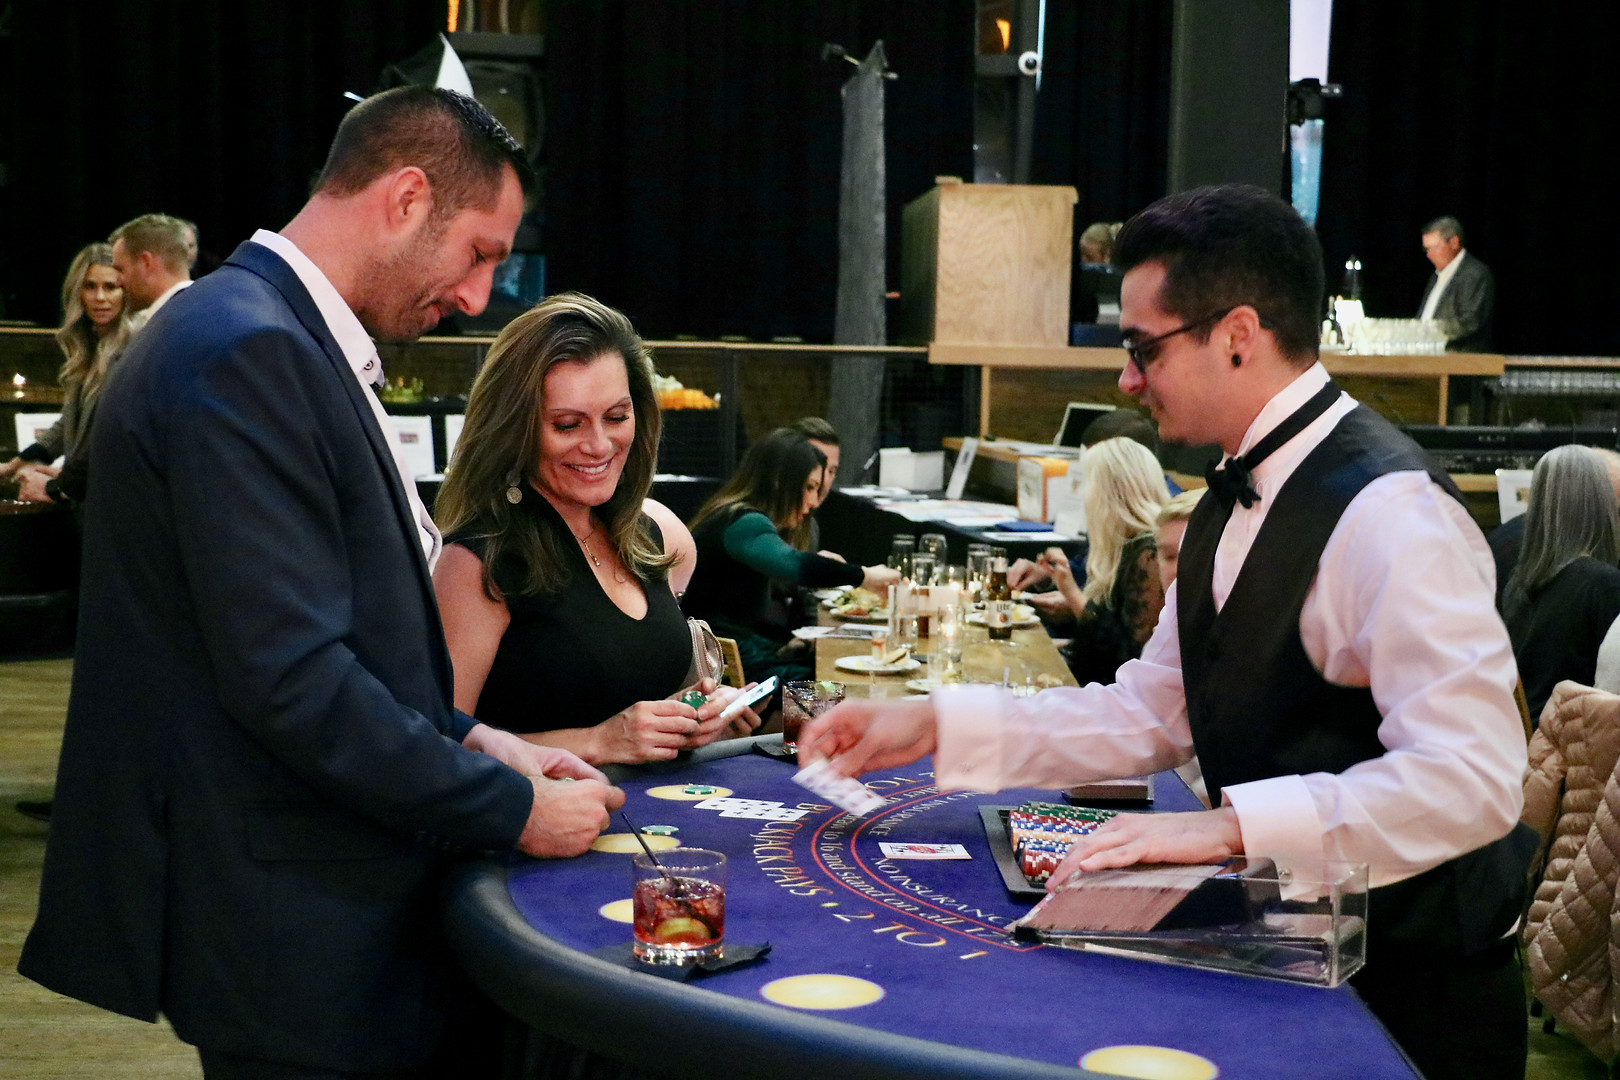 Blackjack with players (1).jpg